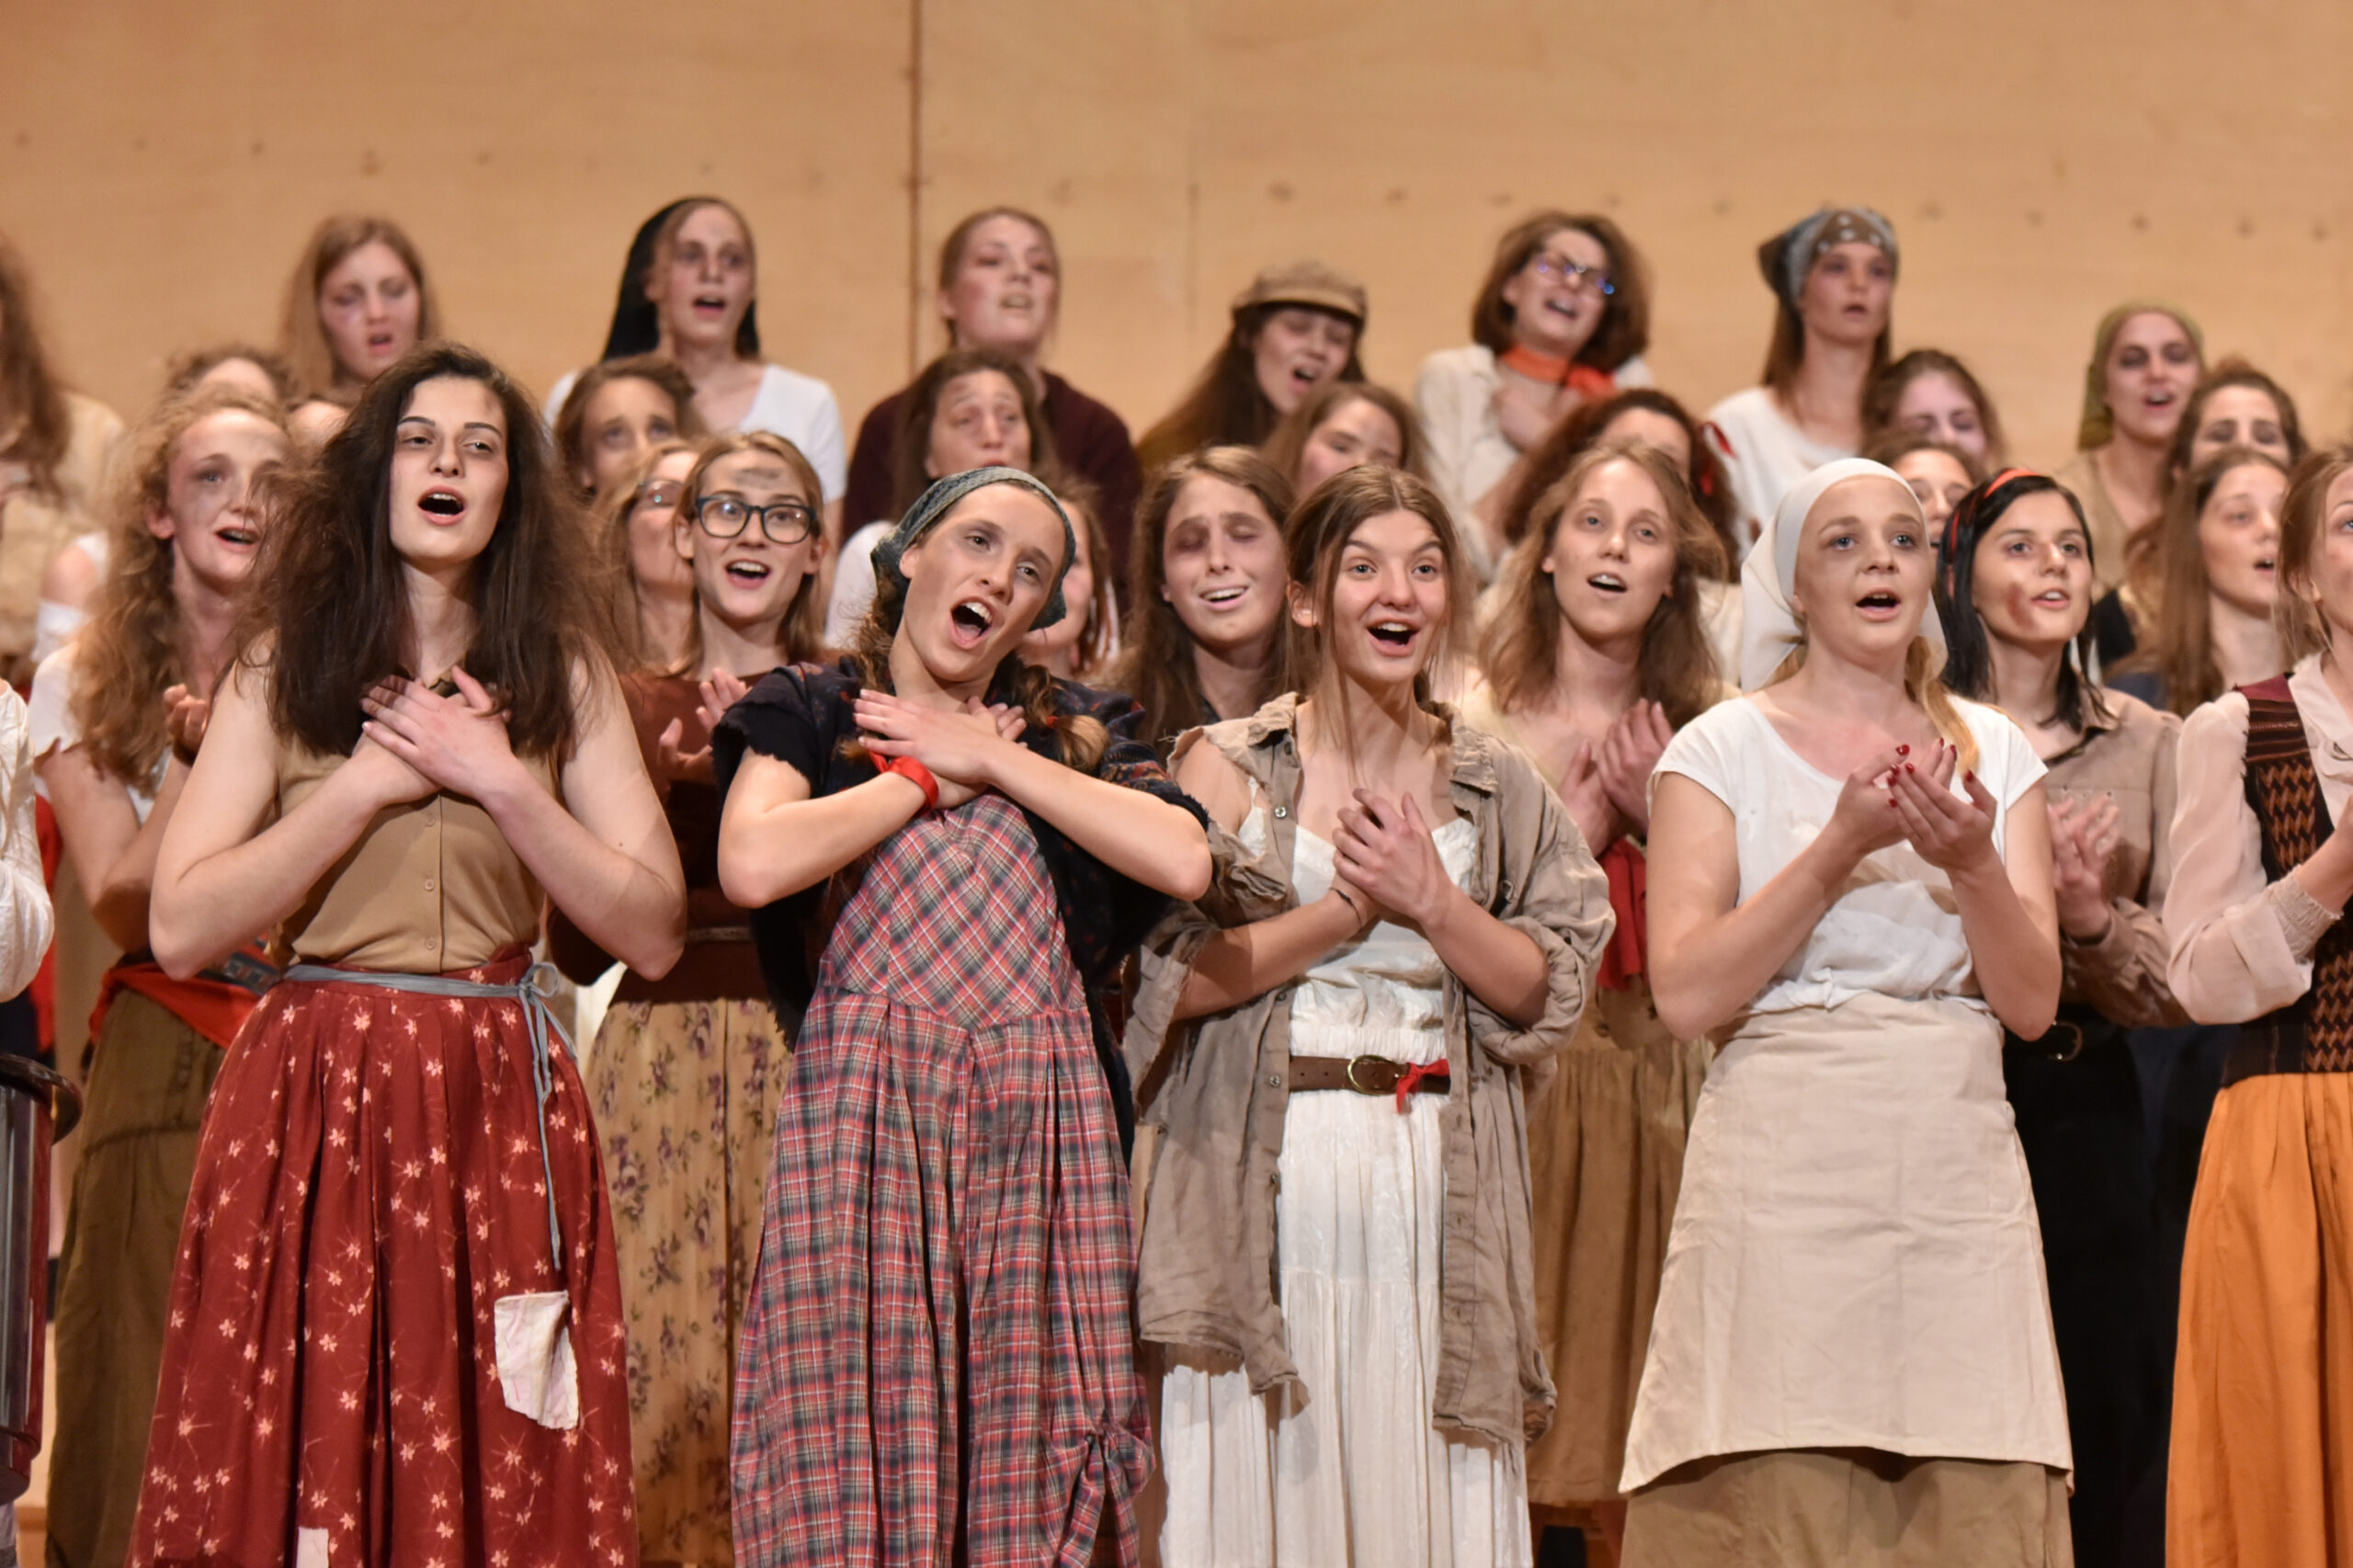 Janez Eržen, Slovenia: Les Misérables, 2019, (Re)Mixed Choir of the Diocesan Classical Gymnasium, Slovenia  - A scene from the musical Les Misérables. A fine example of costume design that upgrades the message of the performance.